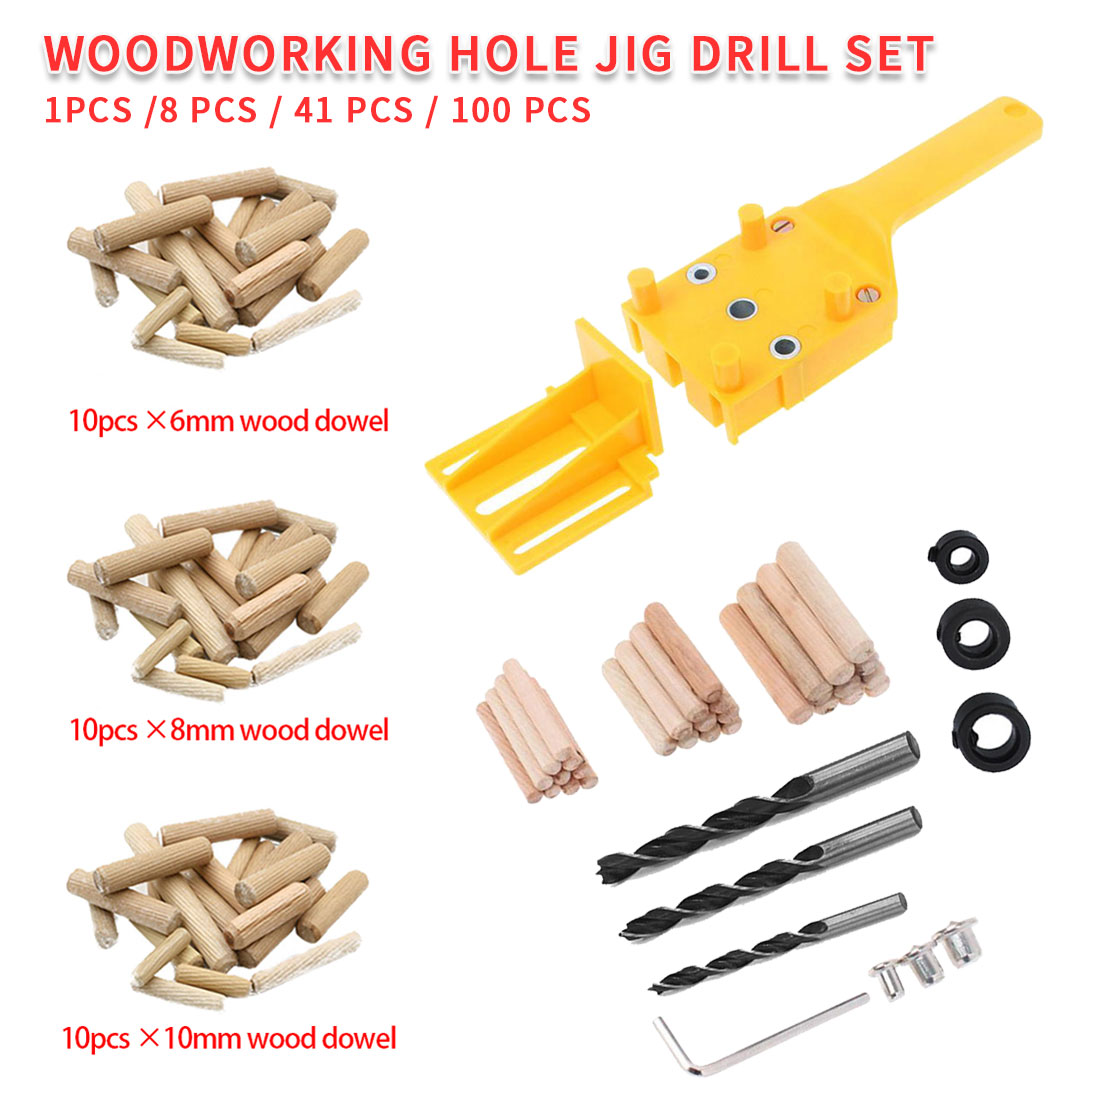 1pc/8pc/14pc/100p Self-Centering Puncher Drill Guide Locator Jig Wood Doweling 6mm 8mm 10mm Handheld Pocket Hole Jig Woodworking